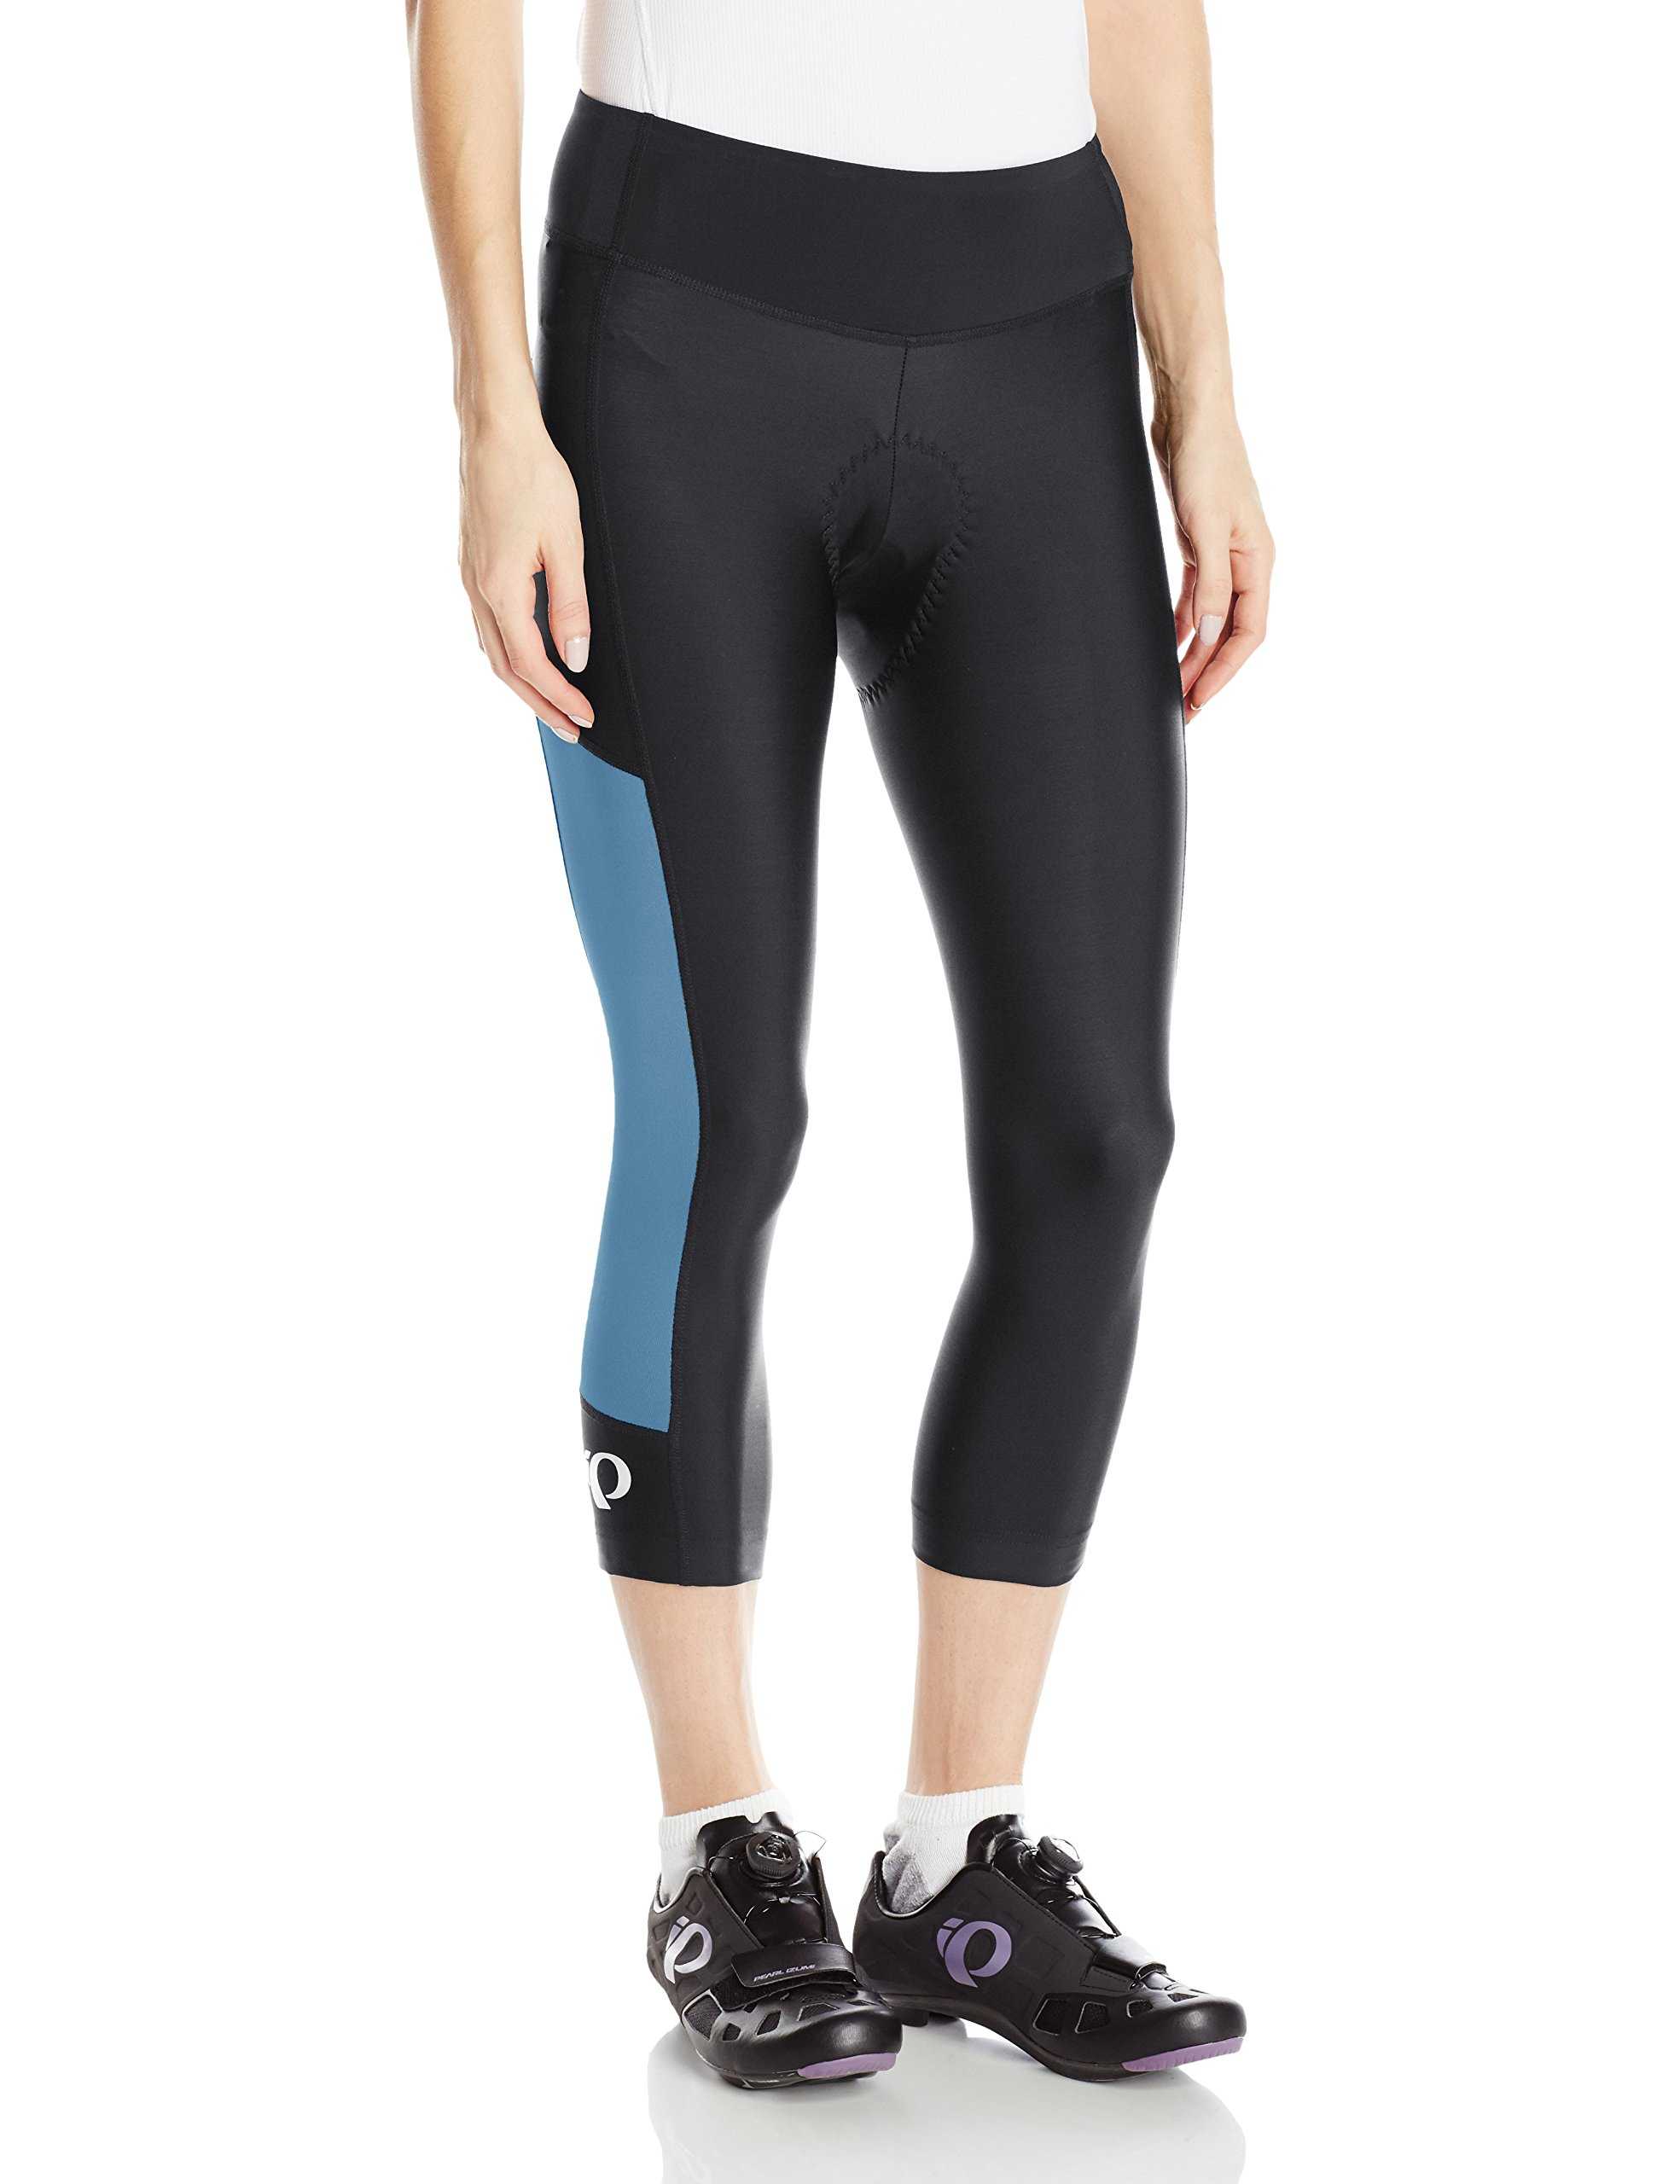 Pearl iZUMi Women's Escape Sugar CYC 3 Quarter Tights, Black/Blue Steel, X-Small